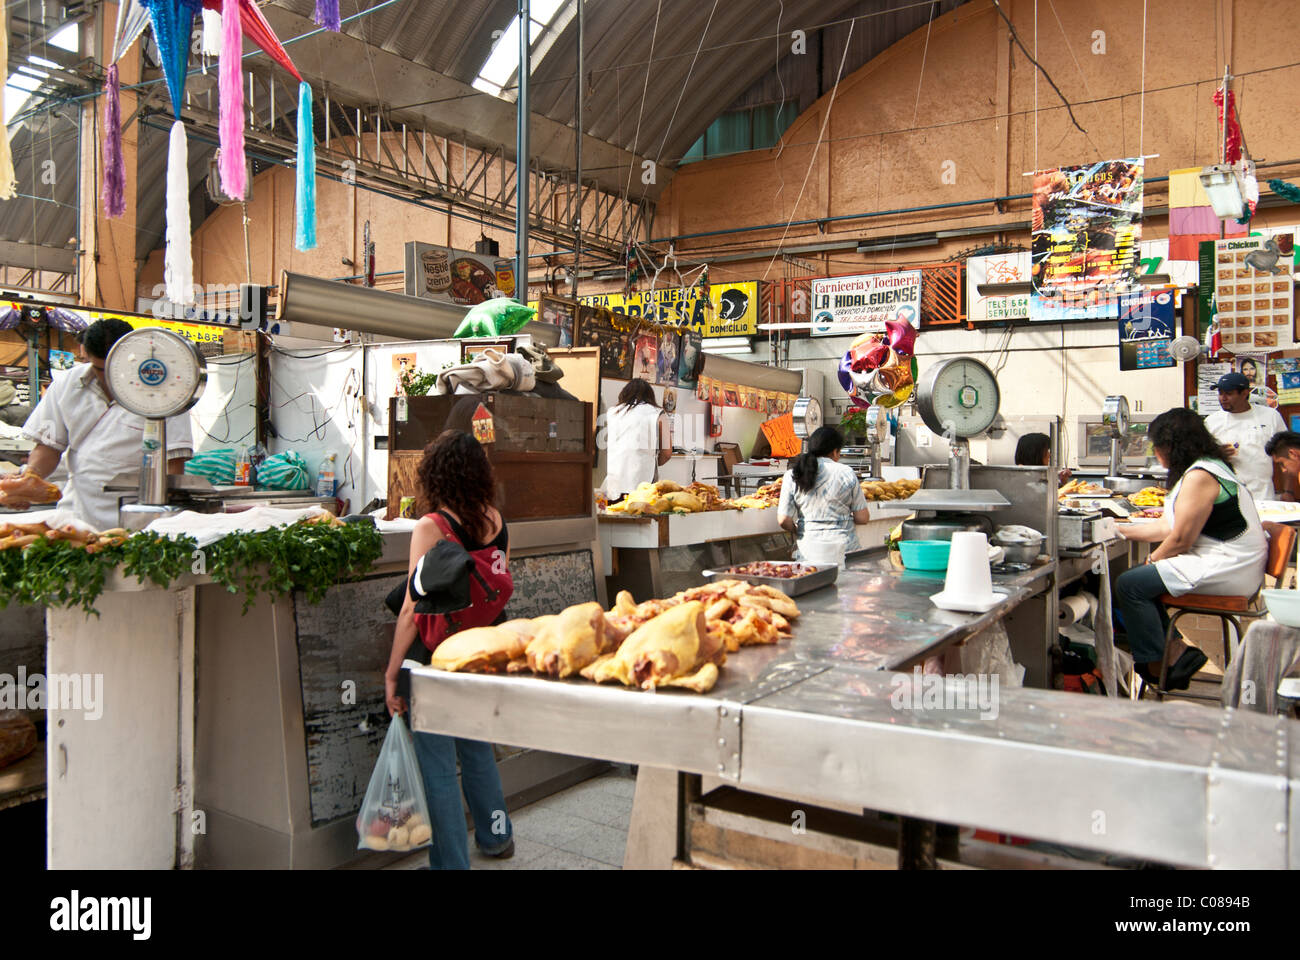 busy chicken butchers working at counters in lofty well lit interior of Medellin Market Roma district Mexico City - Stock Image